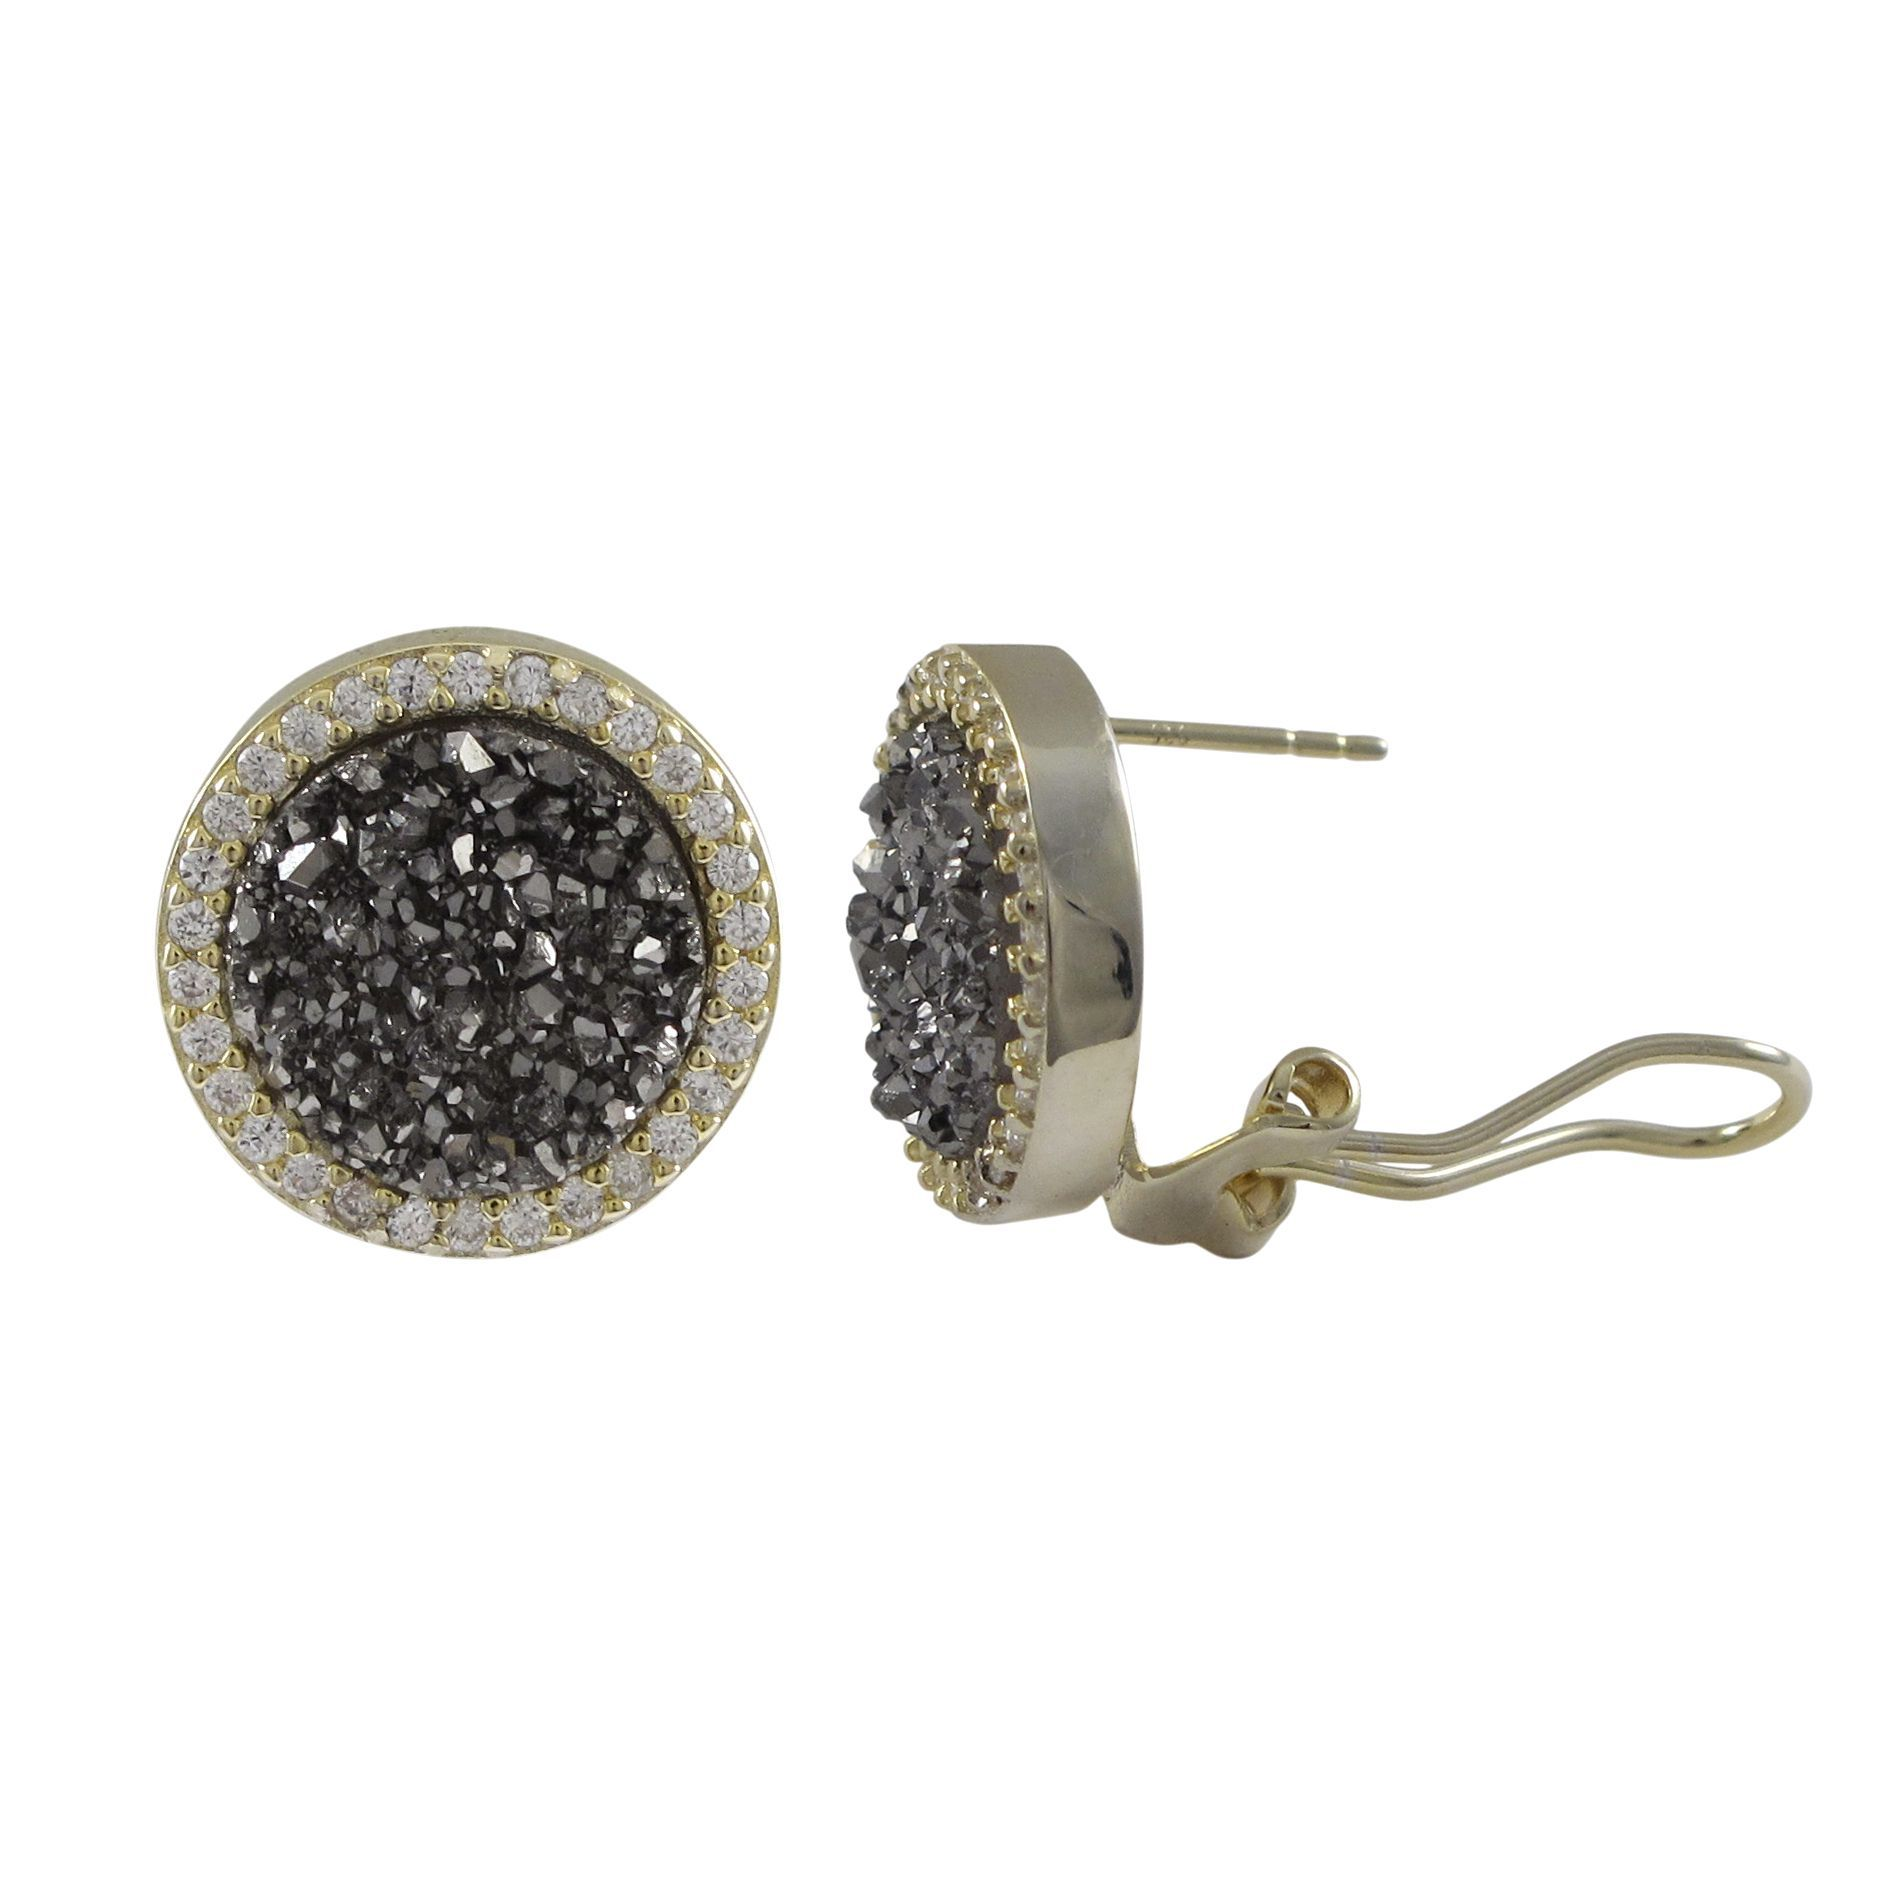 Luxiro Sterling Silver Druzy Quartz and Cubic Zirconia Circle Stud